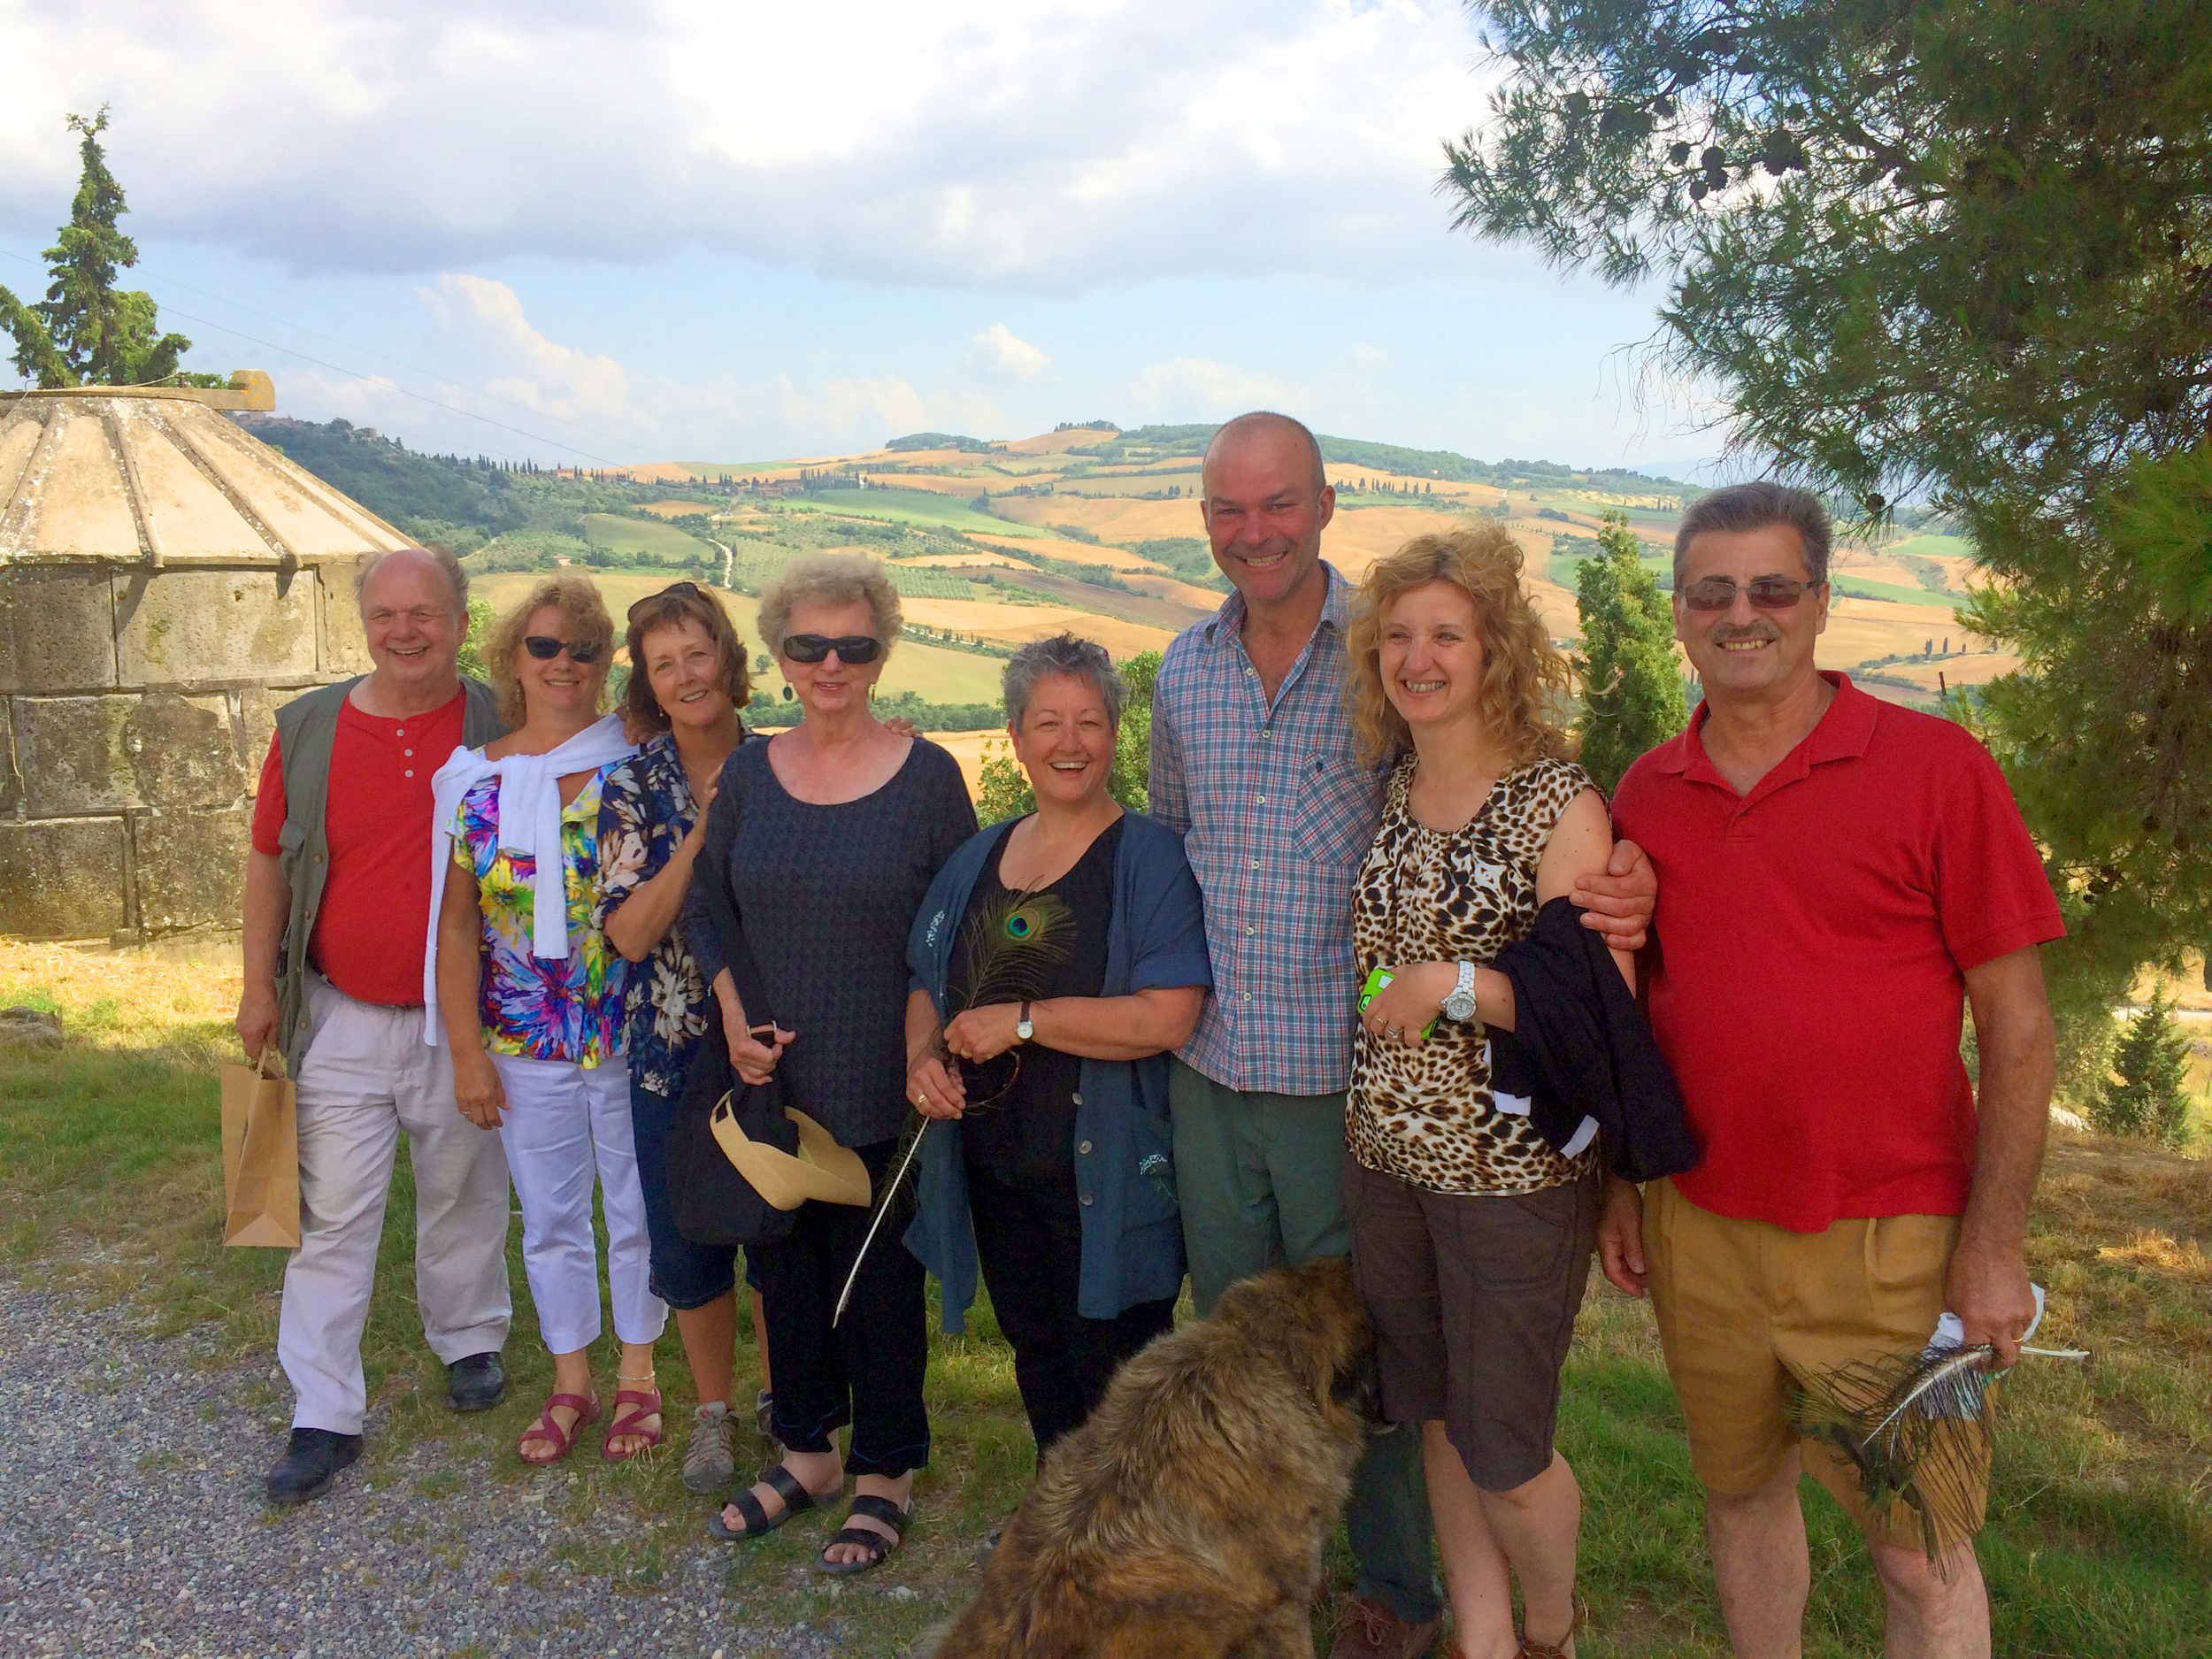 With Ulysses (the tall one) at Podere Il Casale